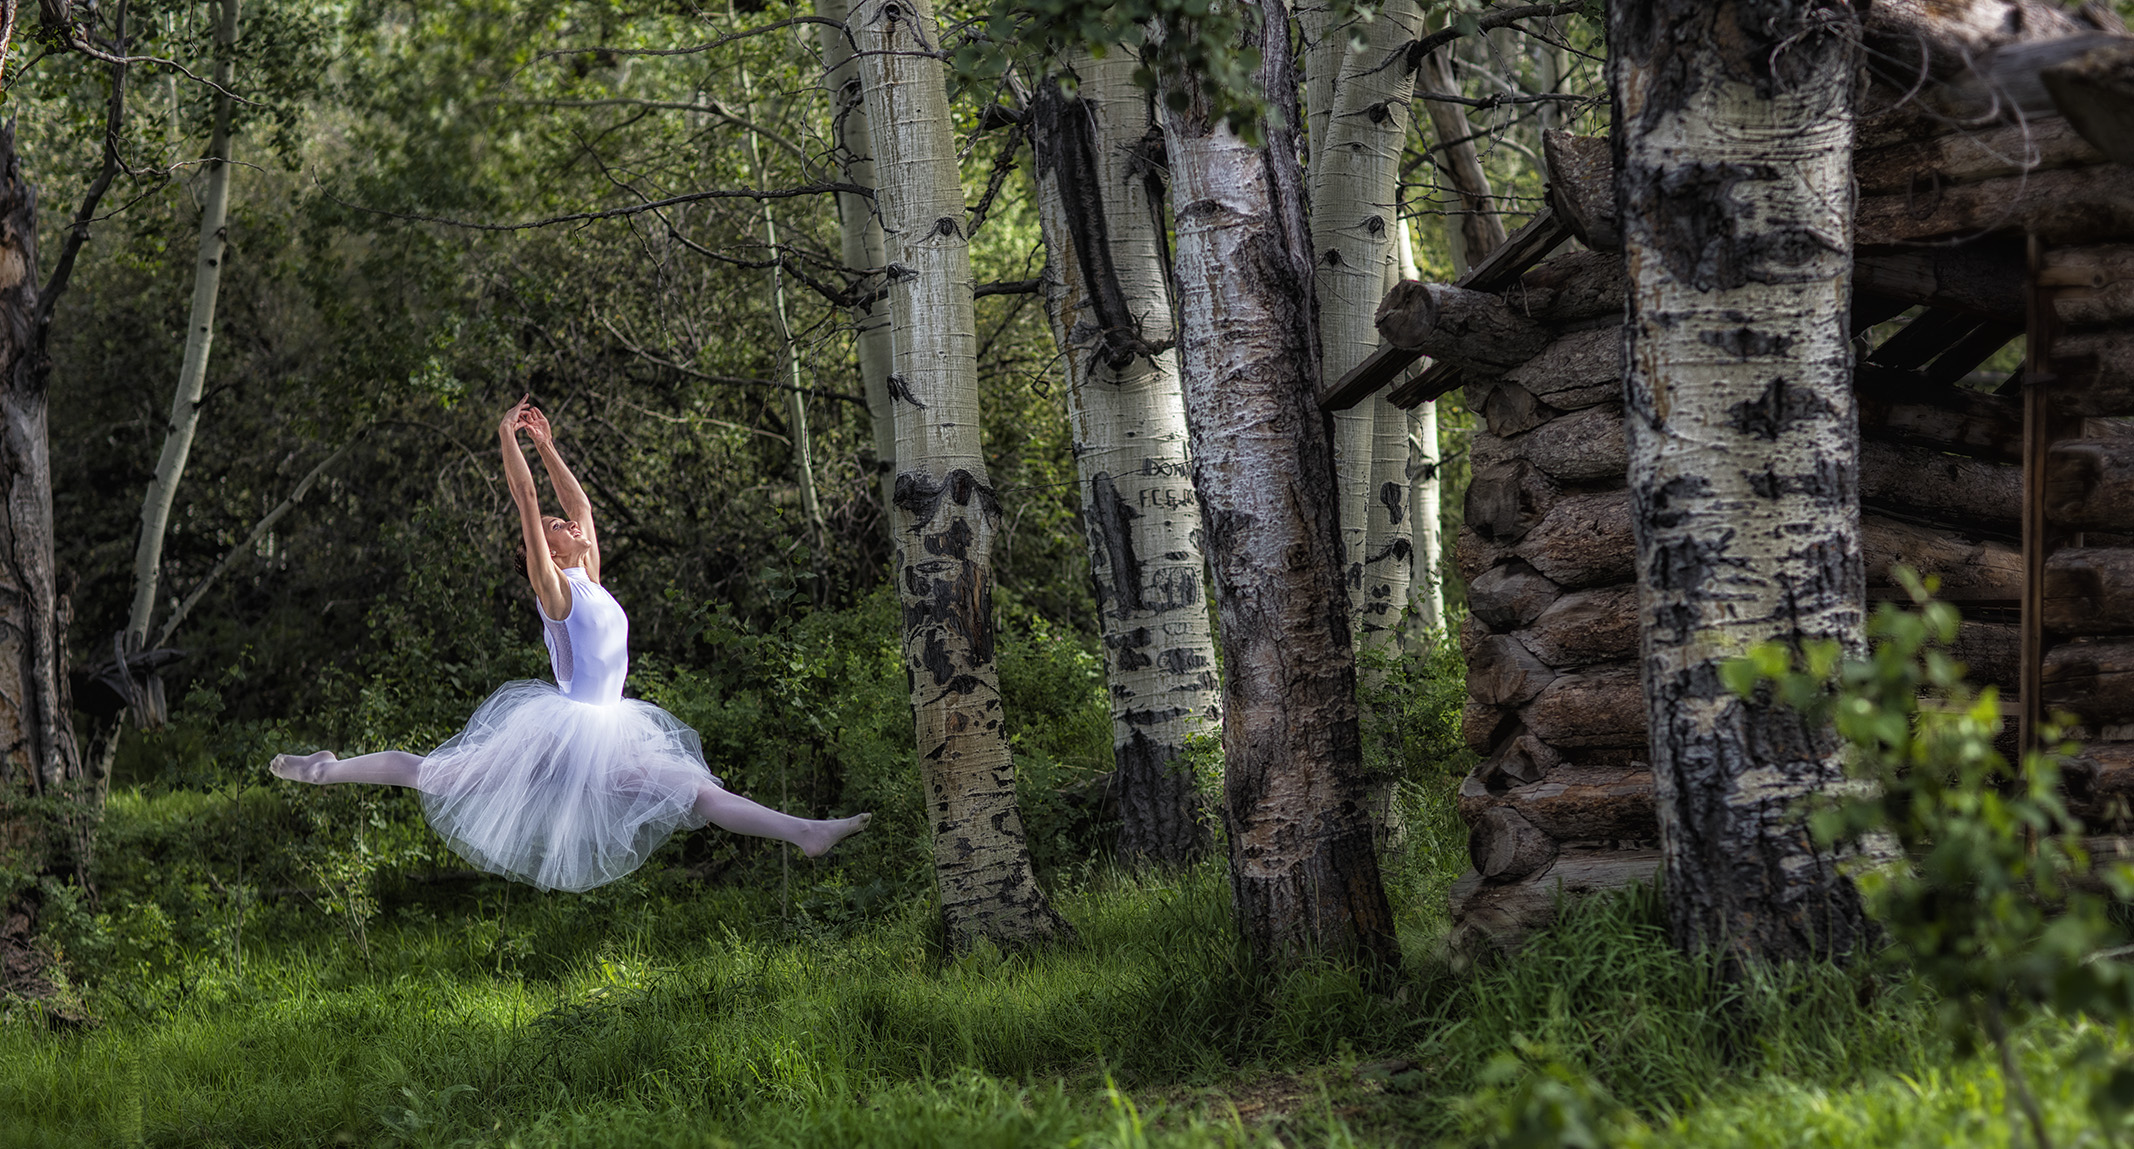 Ballerina dancing in a wooded setting